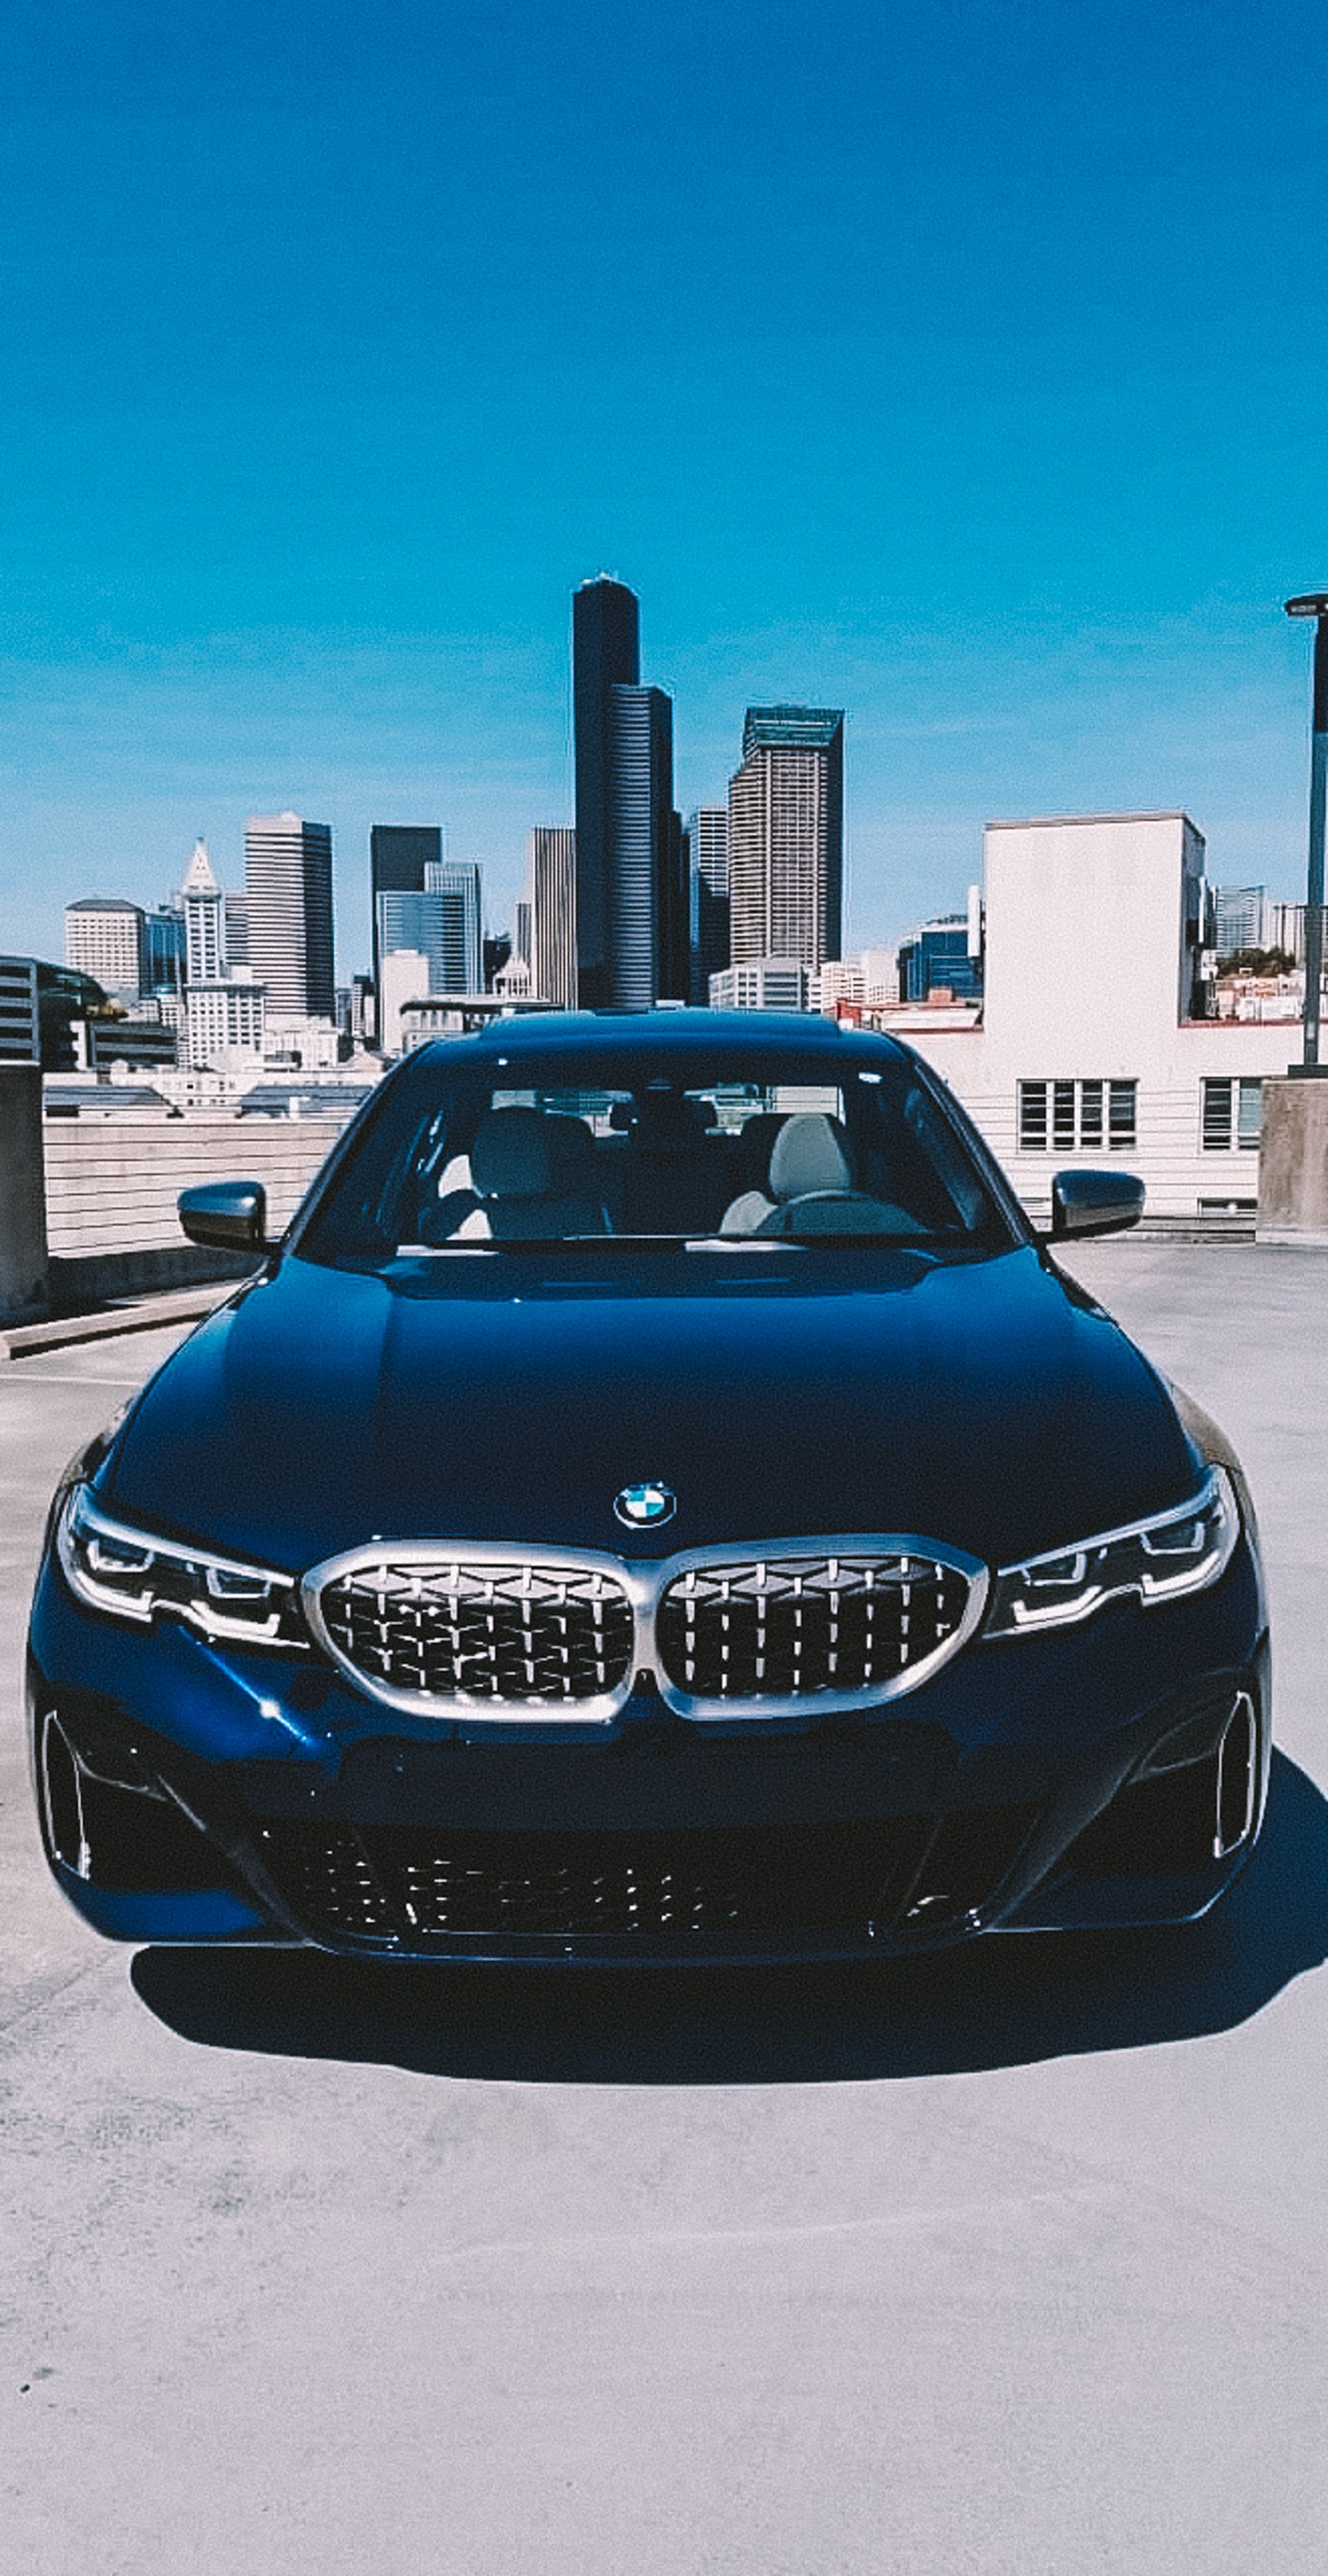 First Units Of The 2020 Bmw M340i Arrive At Us Dealerships With